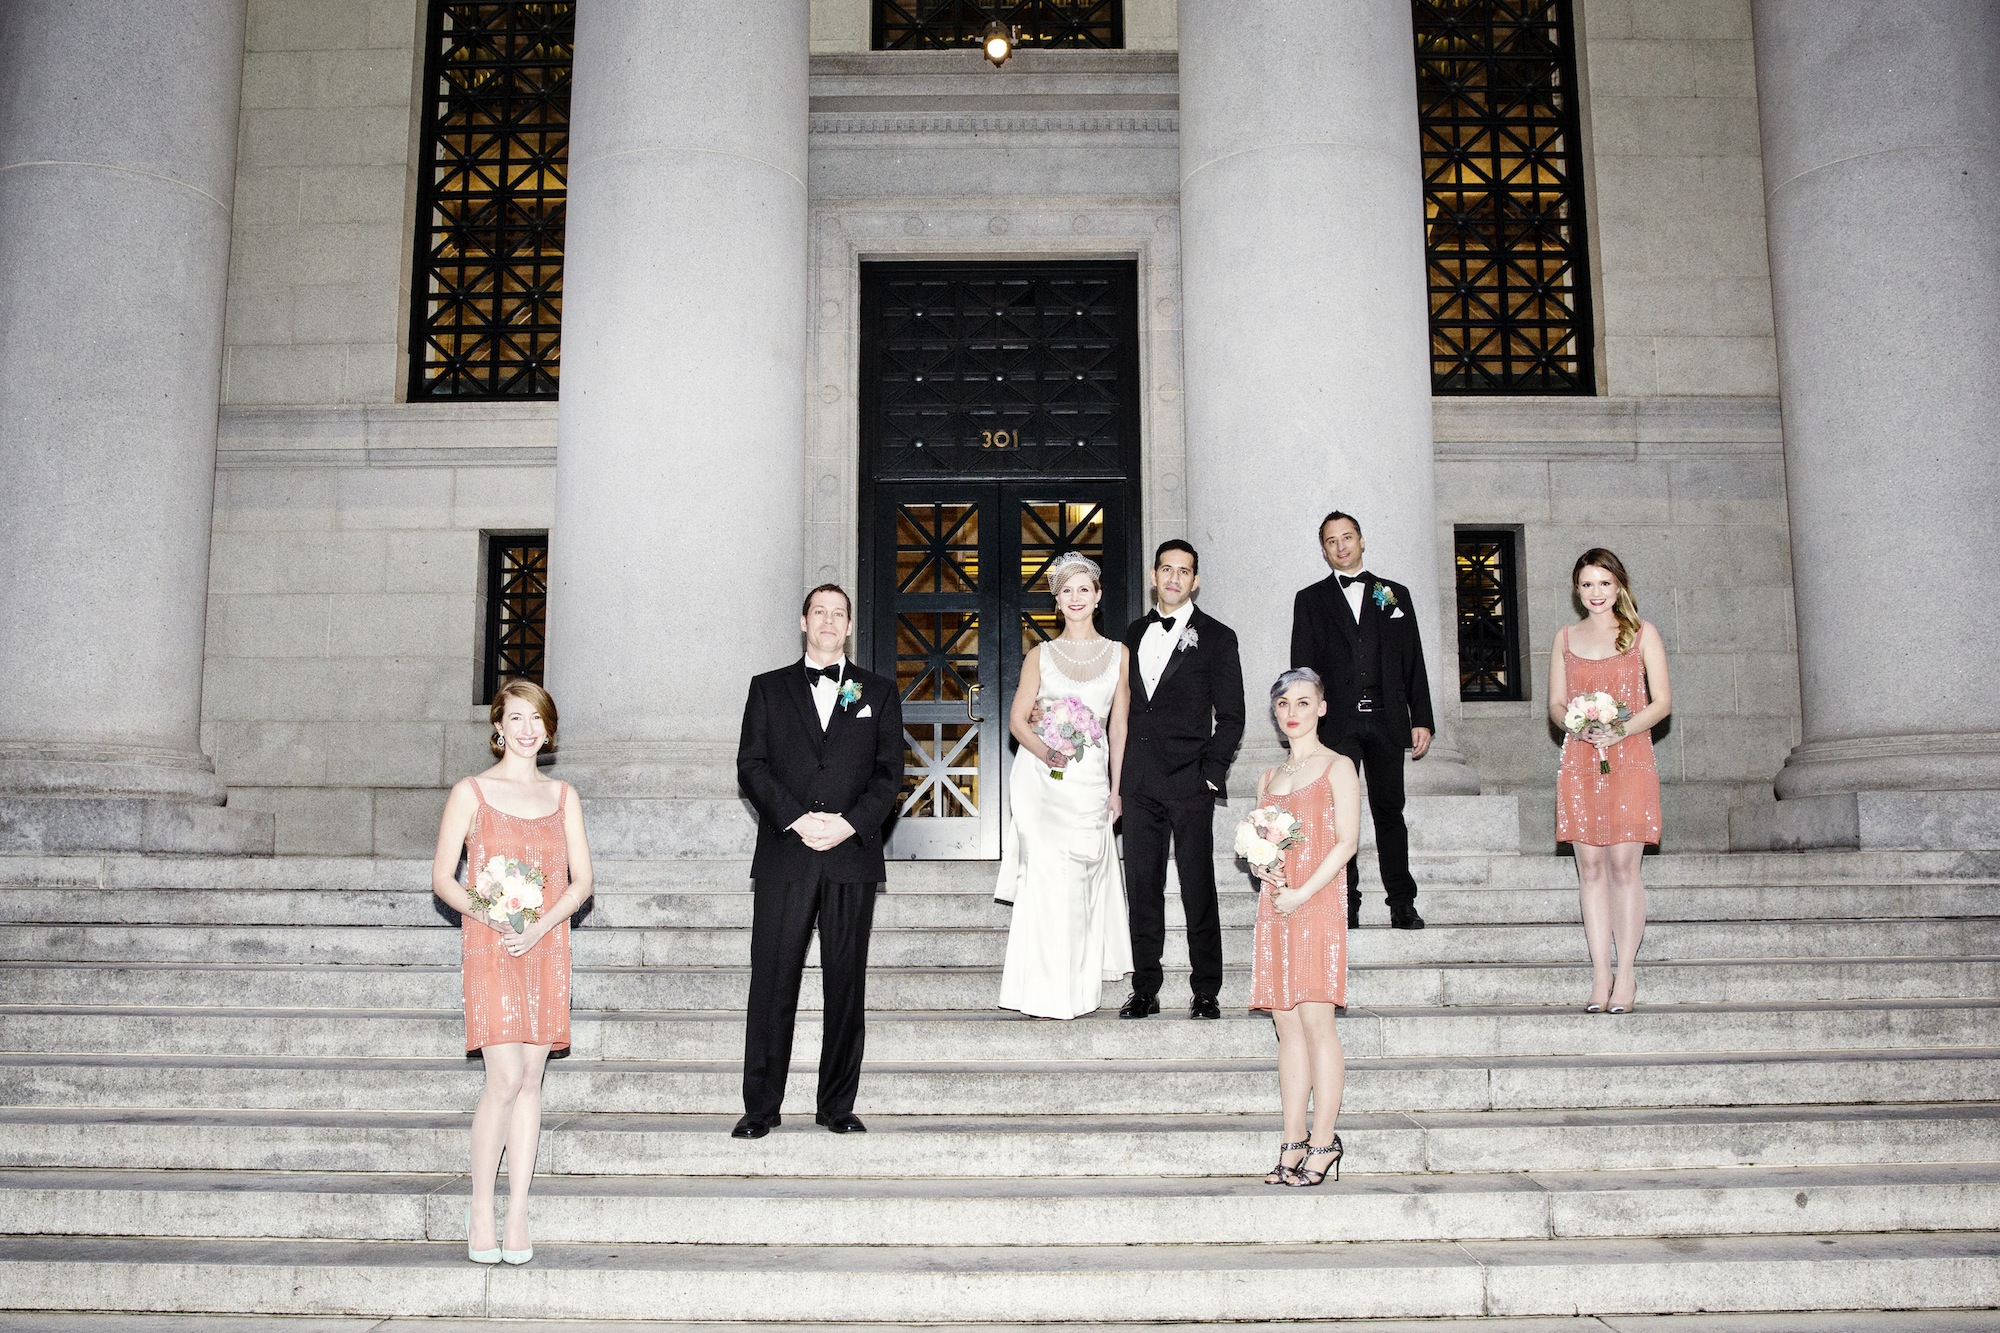 The bridal party - photo by Jessica Stout